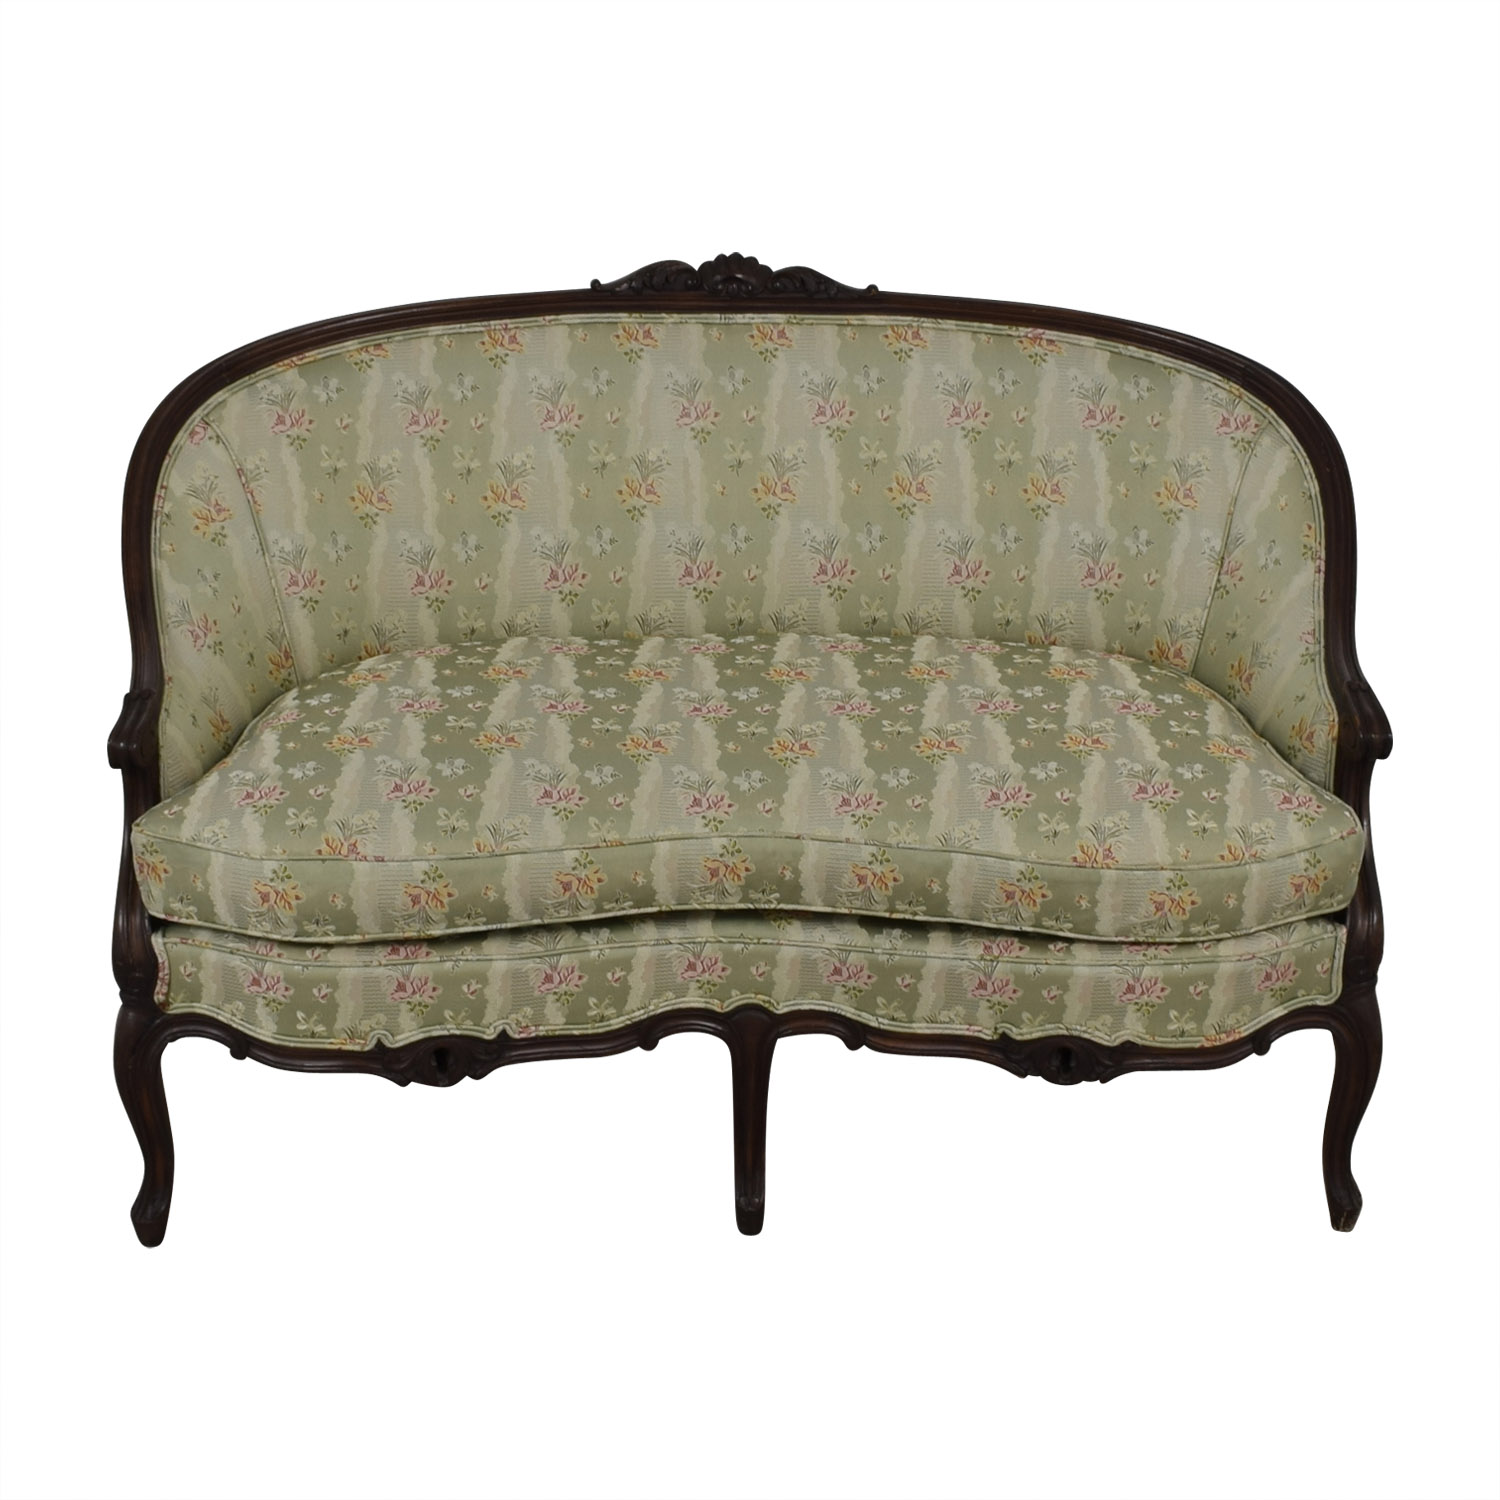 Antique French Floral Upholstered Single Cushion Loveseat